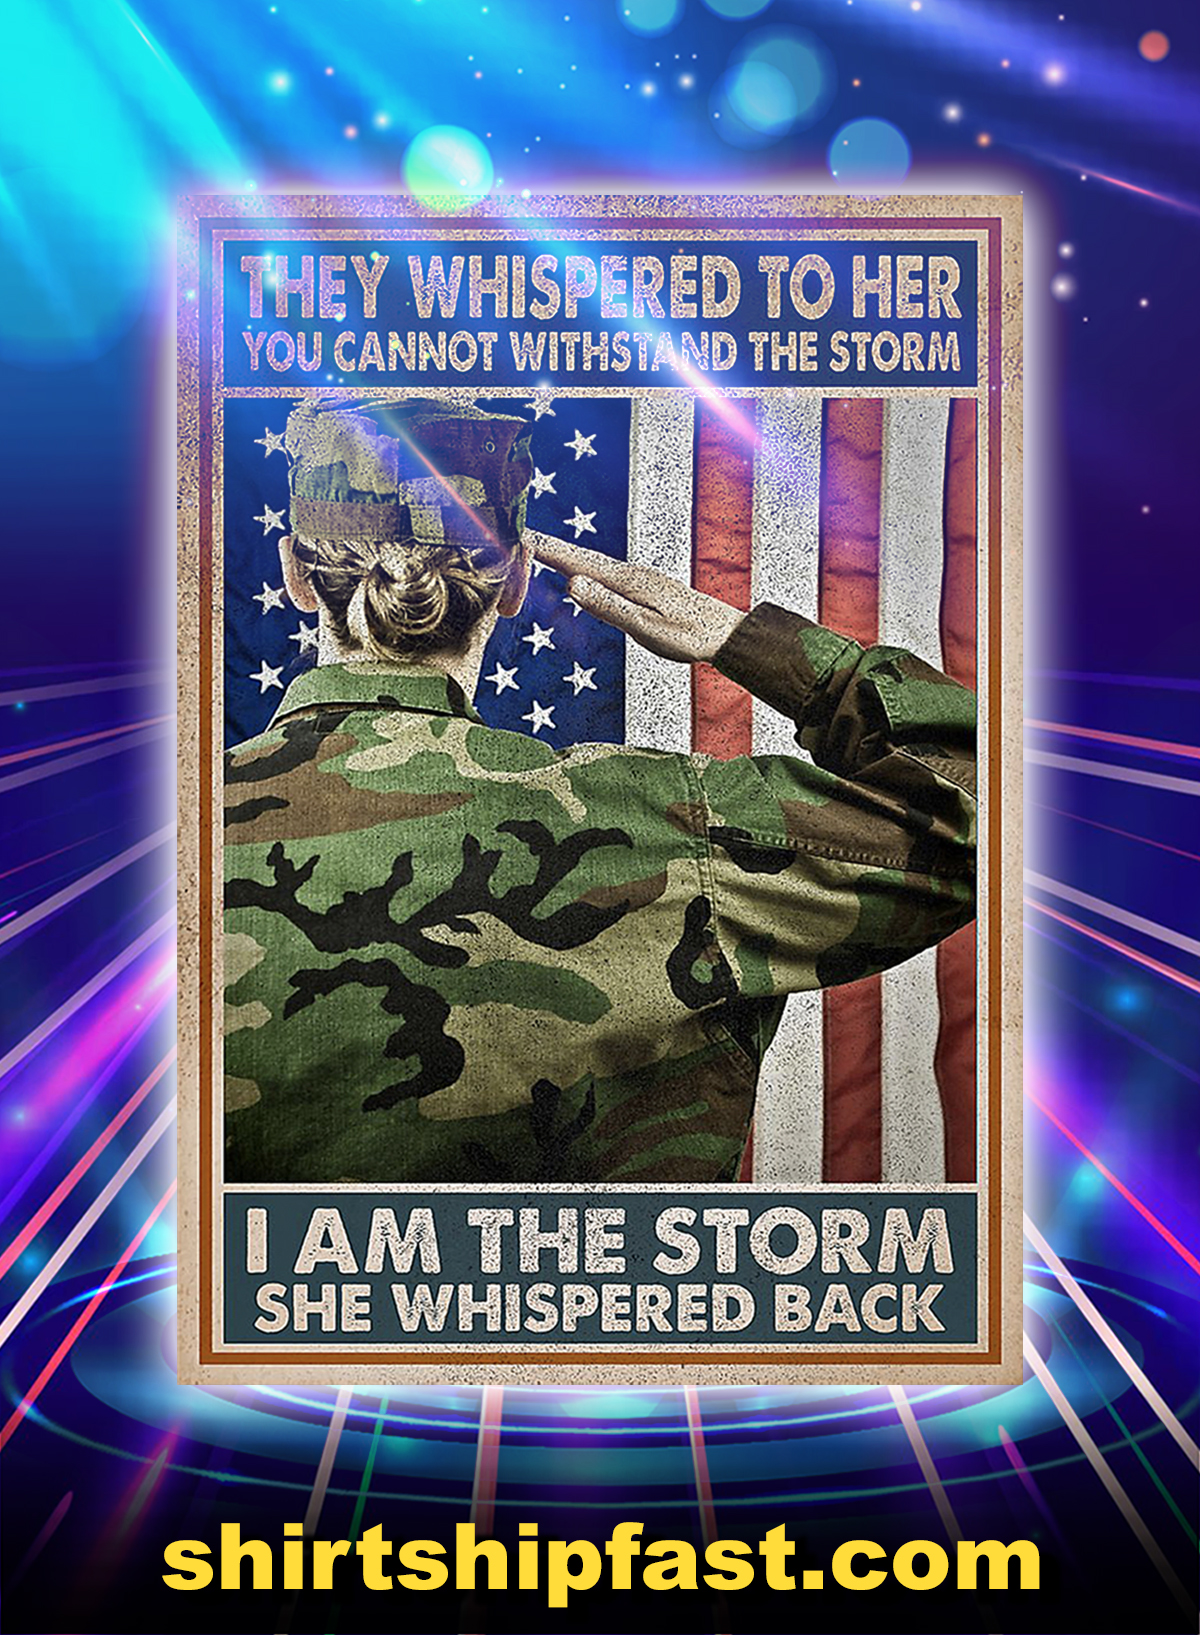 Woman veteran they whispered to her i am the storm poster - A1